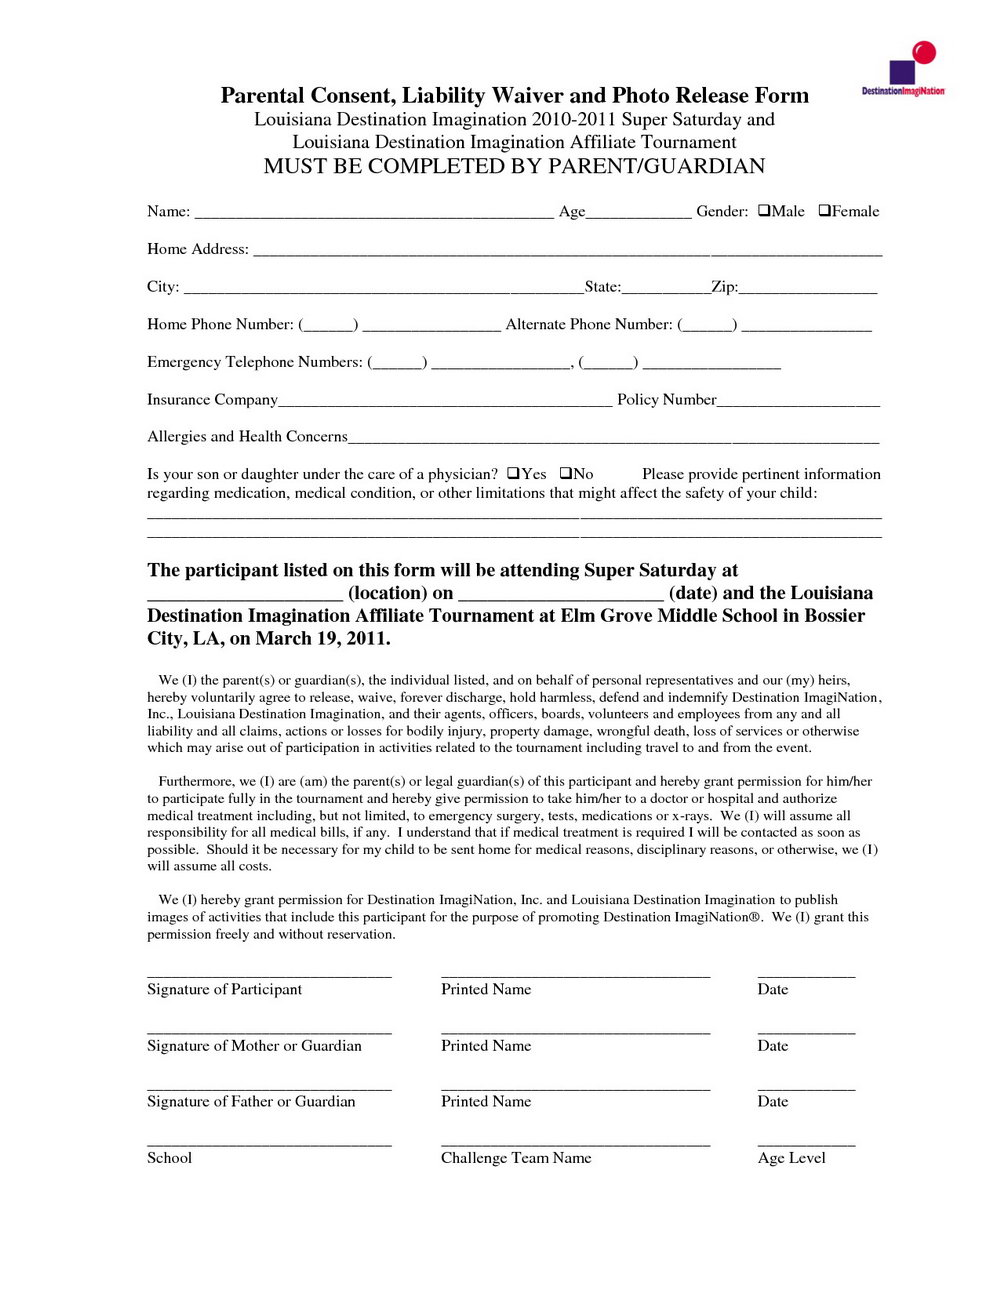 Independent Contractor Liability Waiver Form